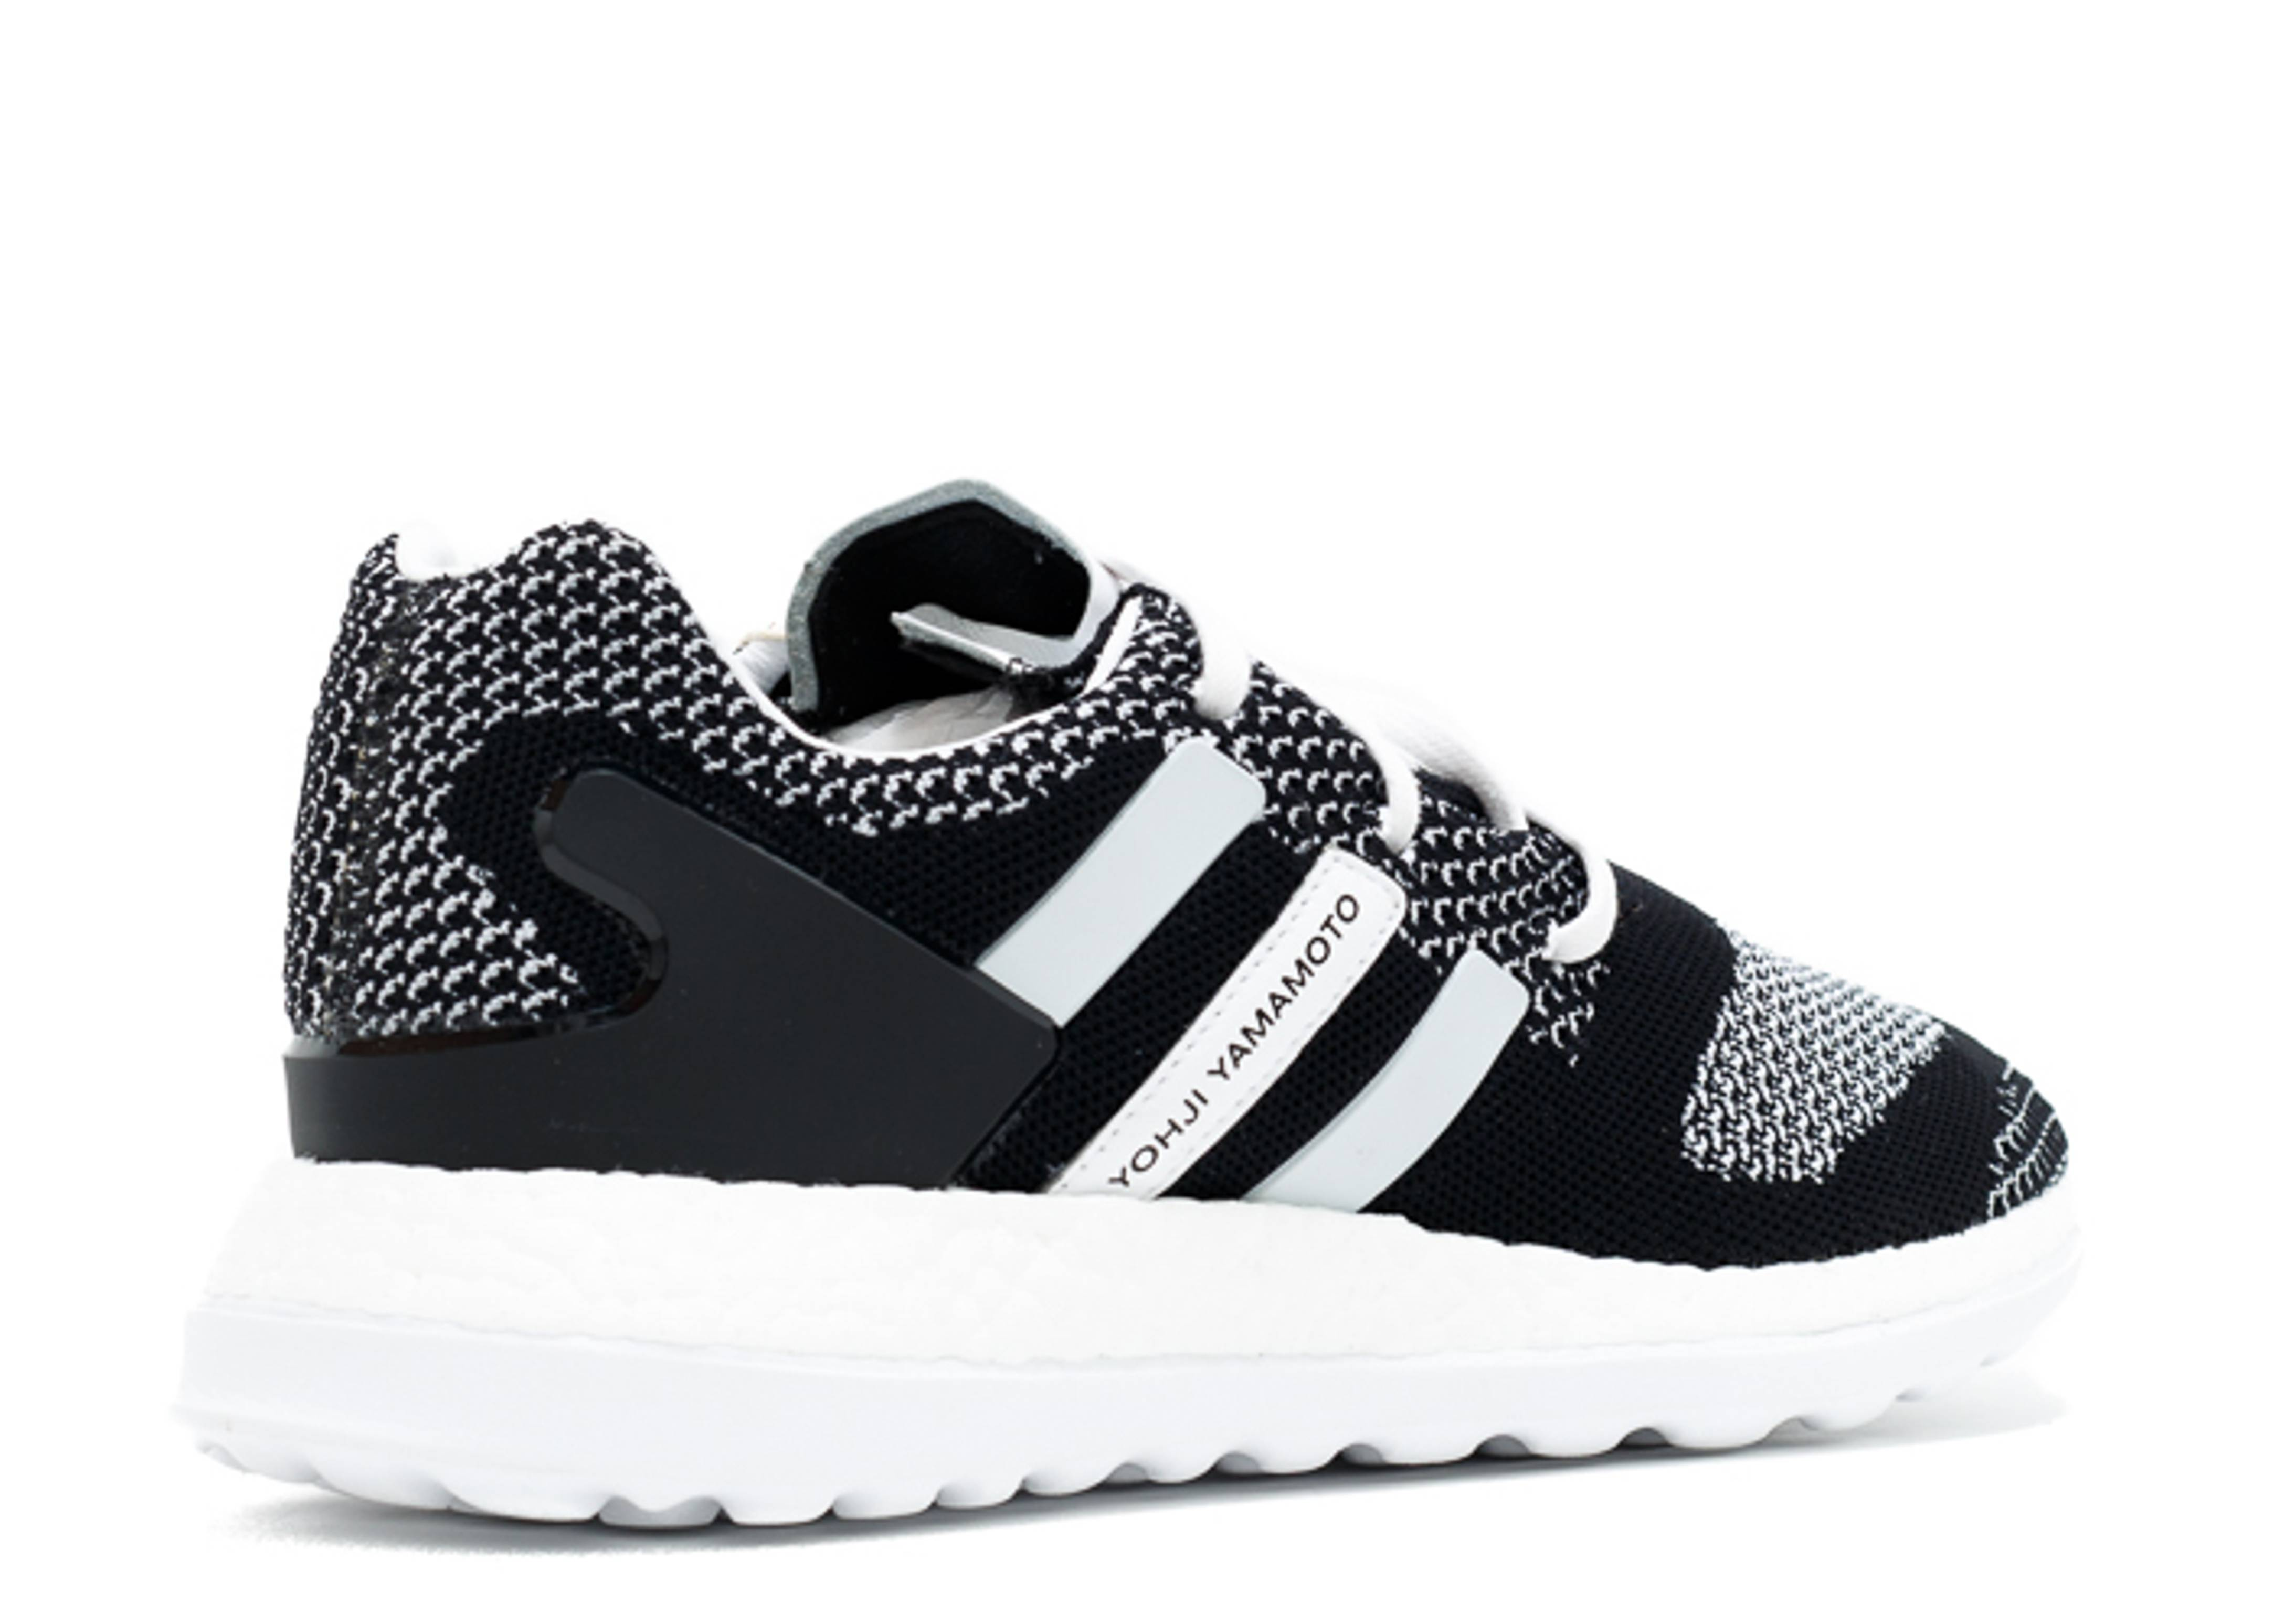 uk availability 683de fba6b adidas y3 boost for sale